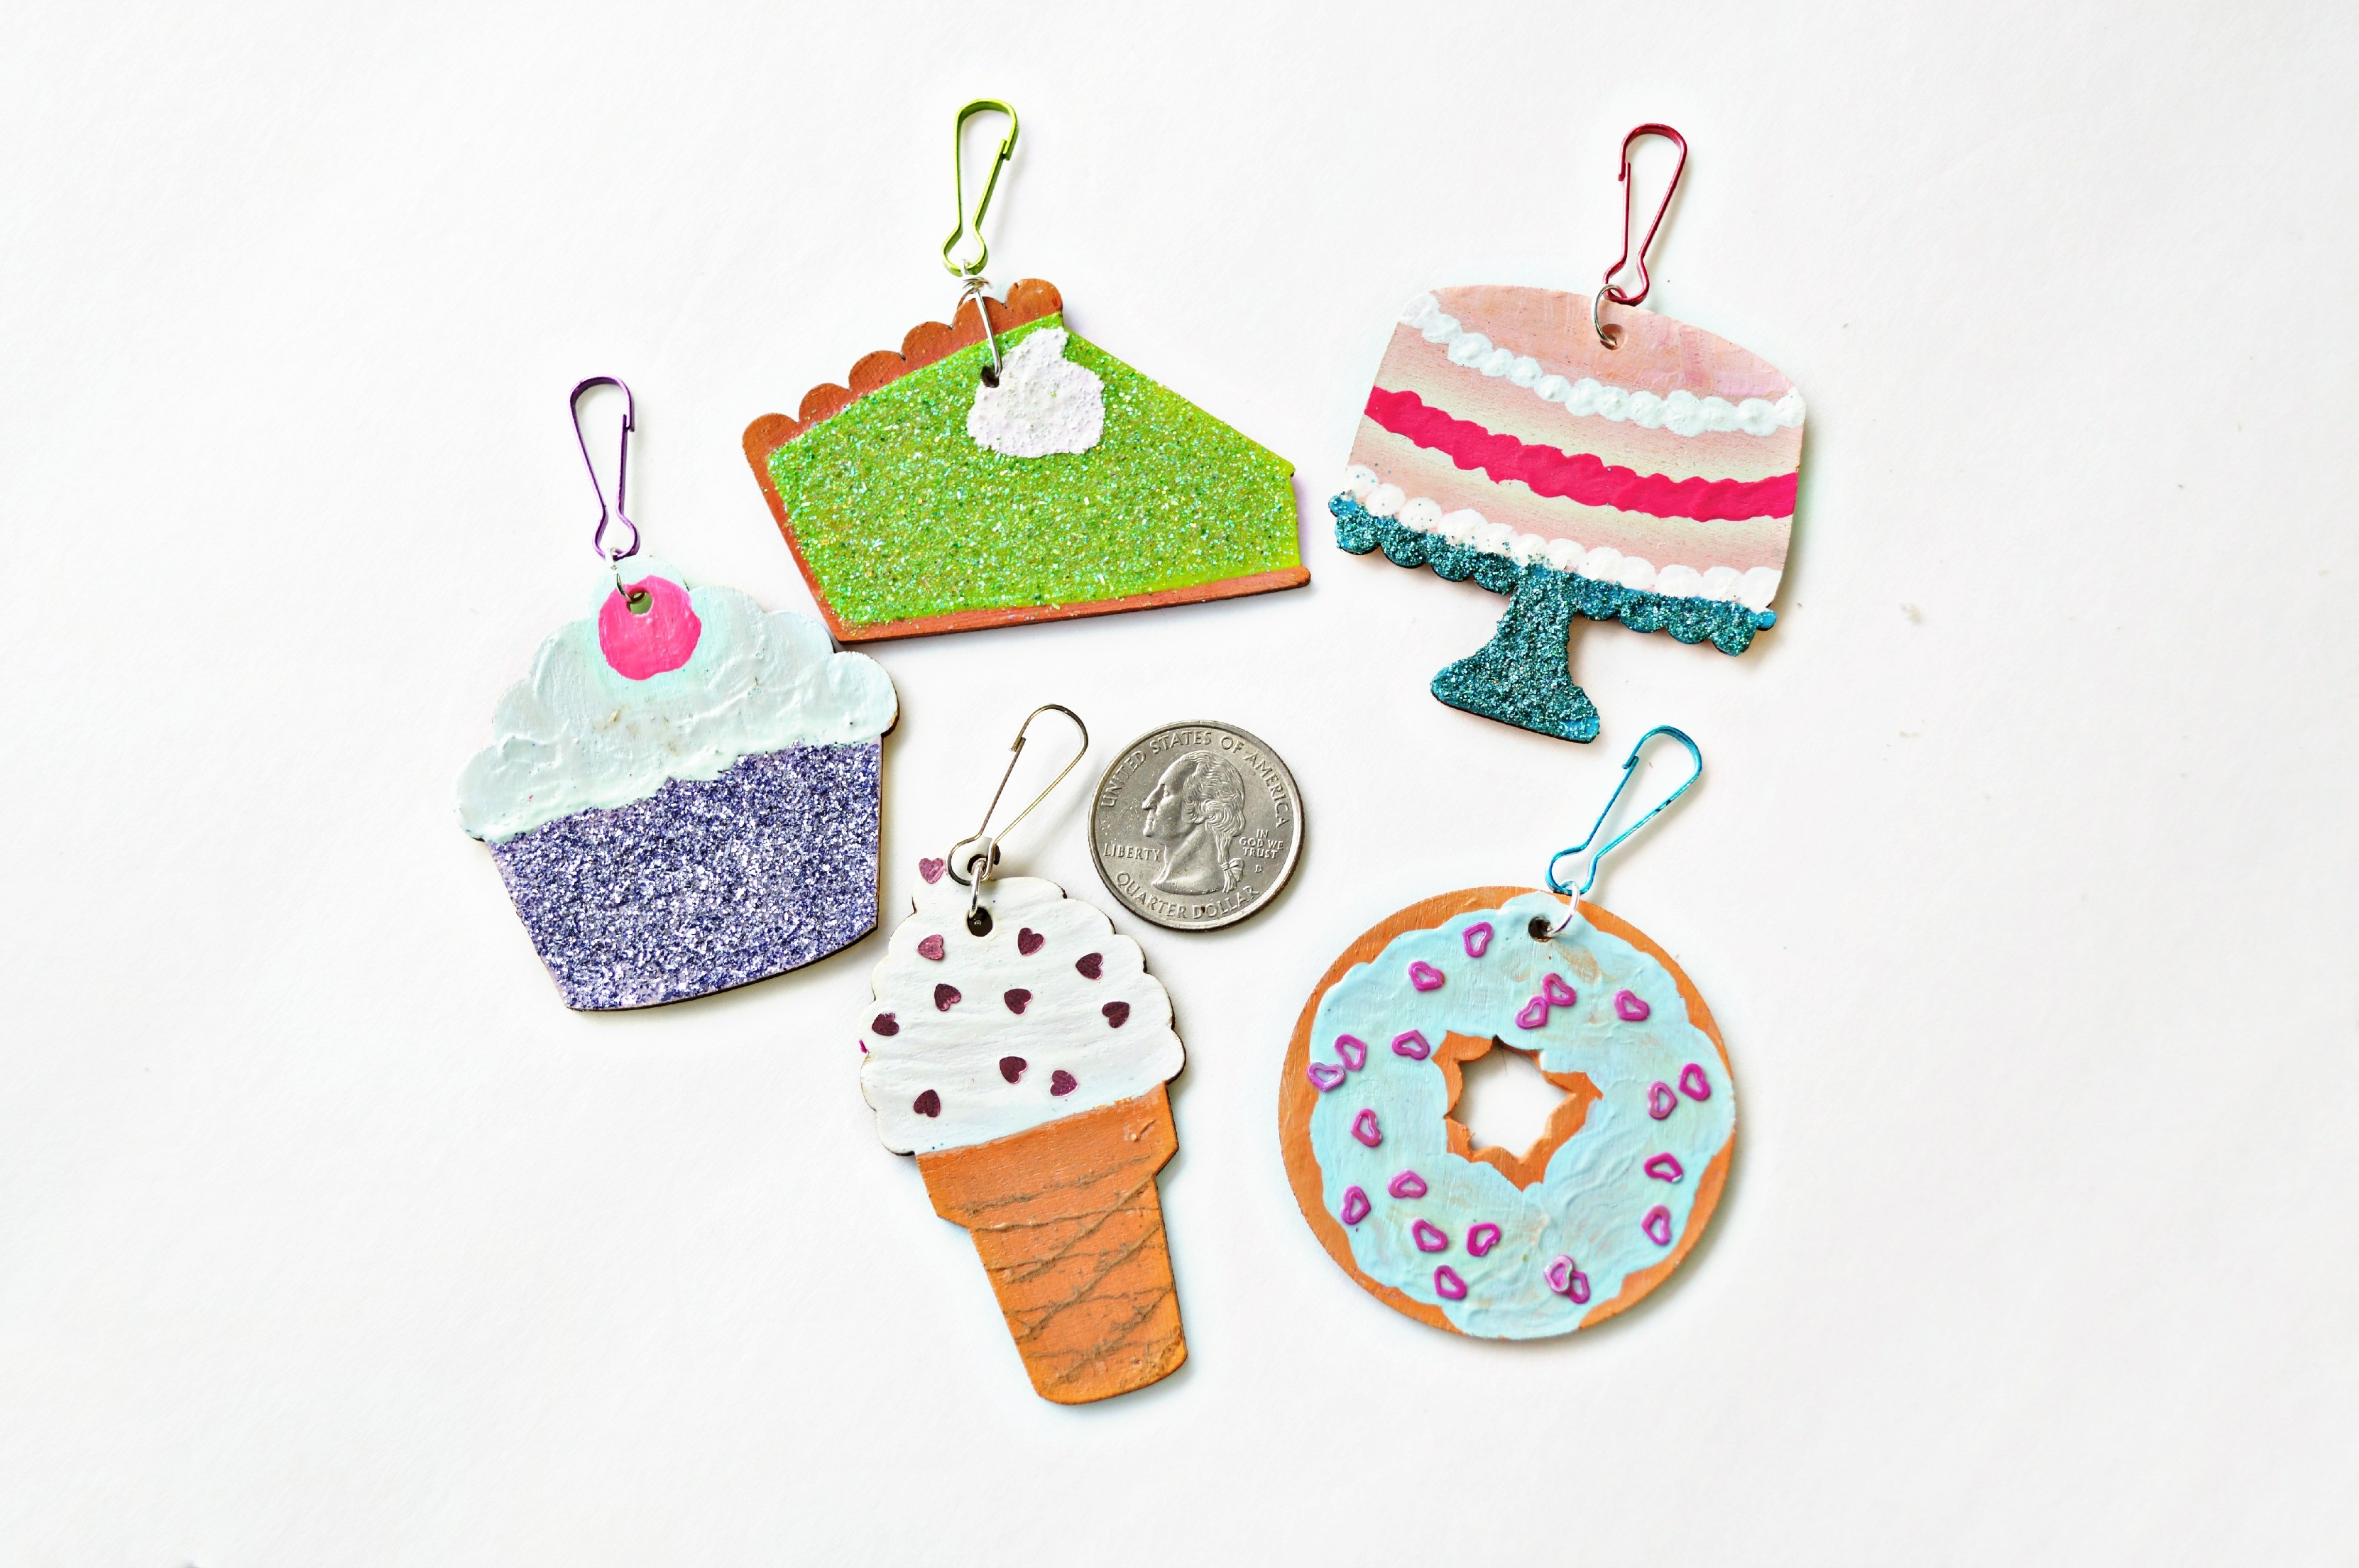 Sweets Key Chain Charms